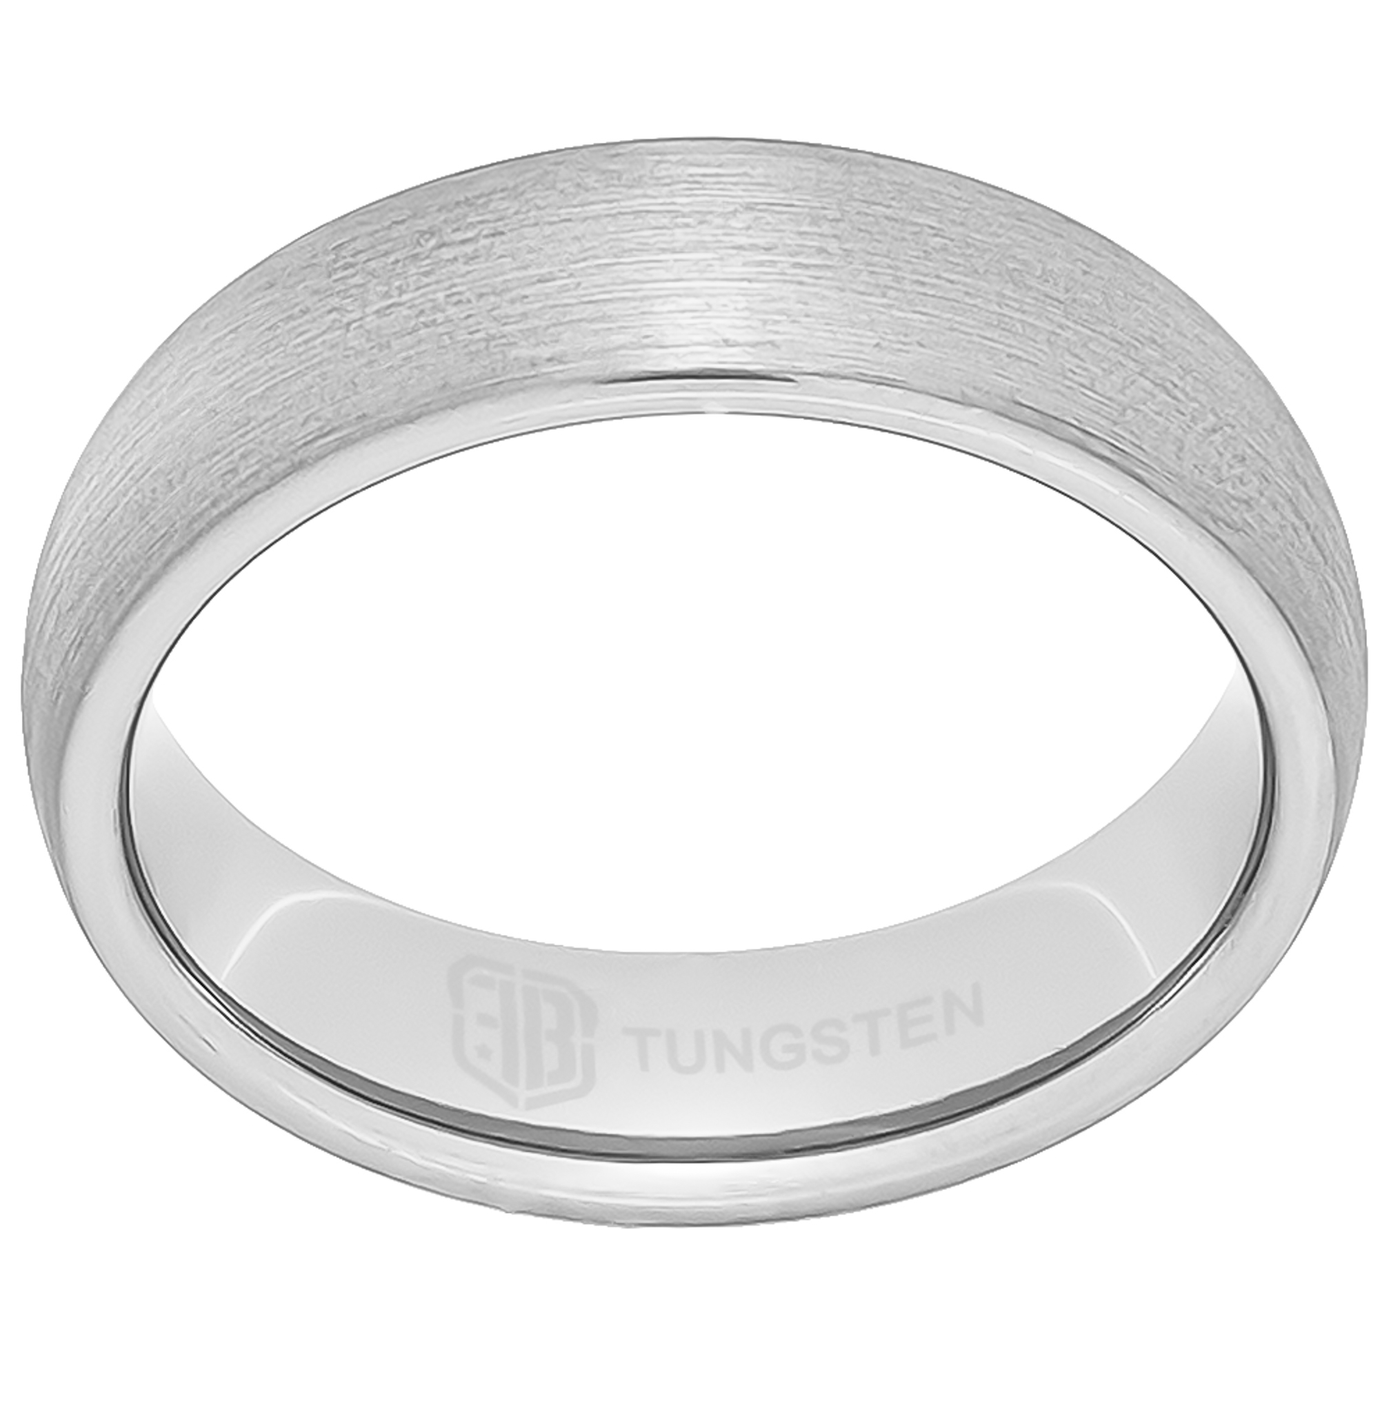 Brushed finish tungsten ring